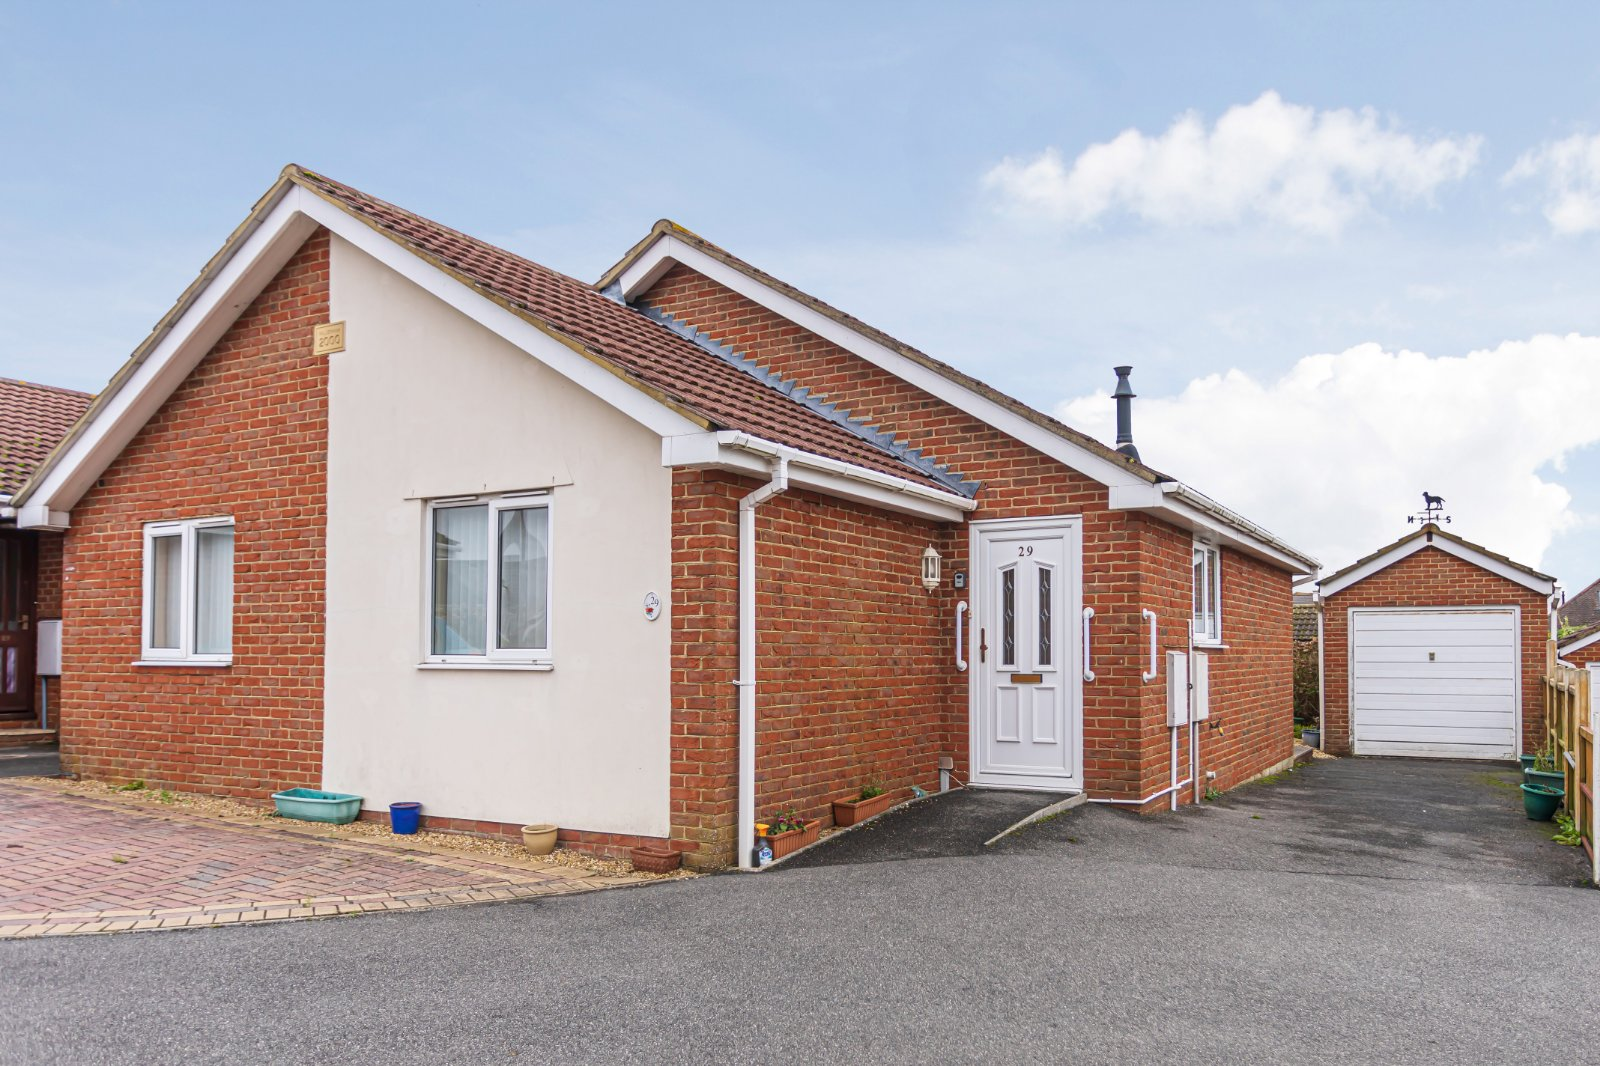 3 bed bungalow for sale in Brixey Close, Poole - Property Image 1